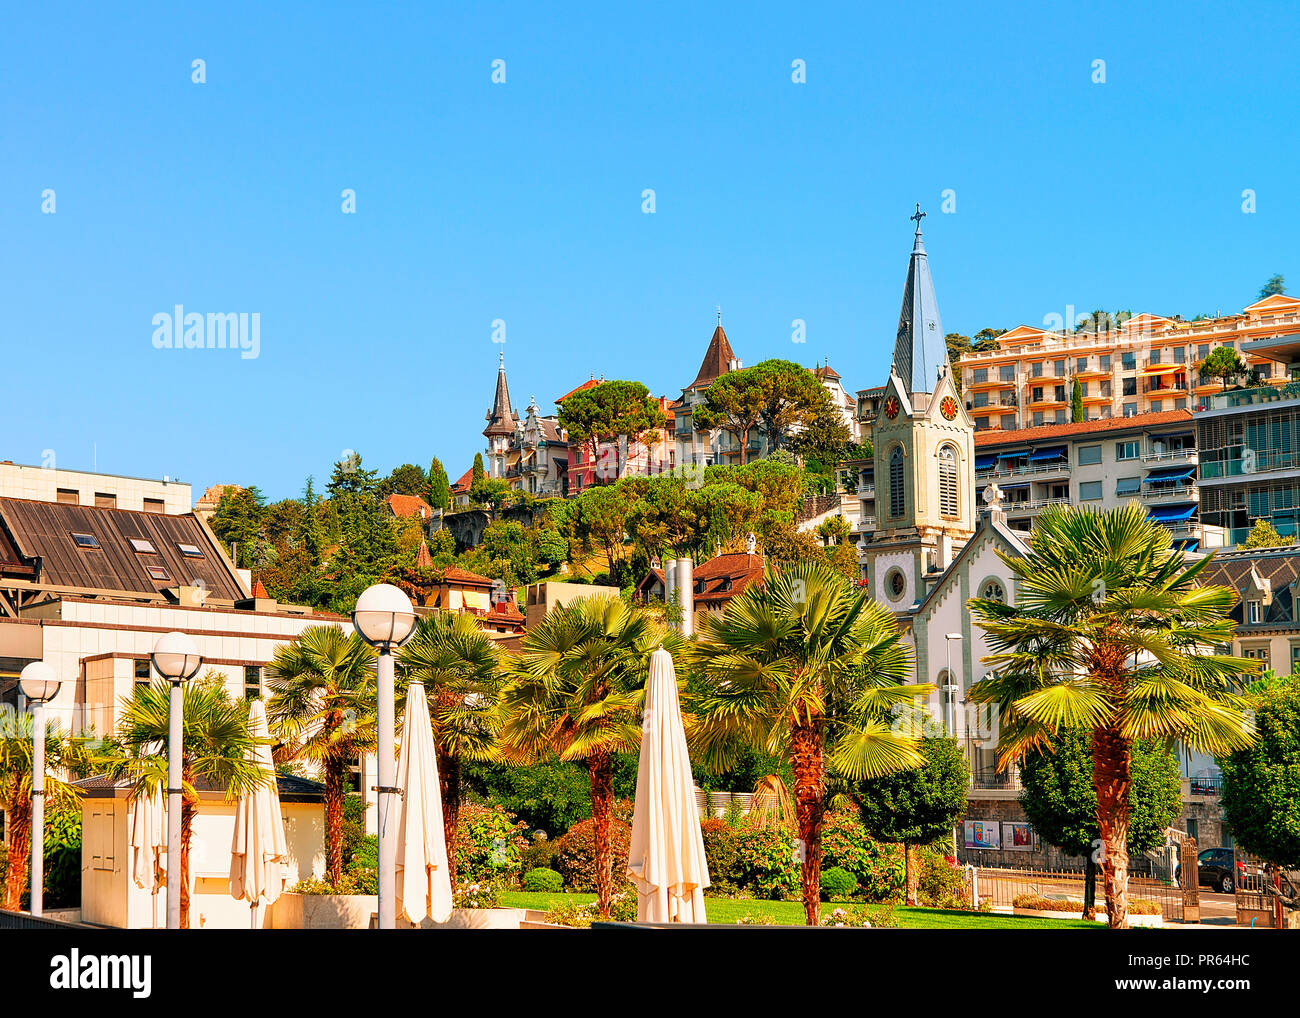 Montreux, Switzerland - August 28, 2016: Church clock tower on Geneva Lake in Montreux, Swiss Riviera - Stock Image